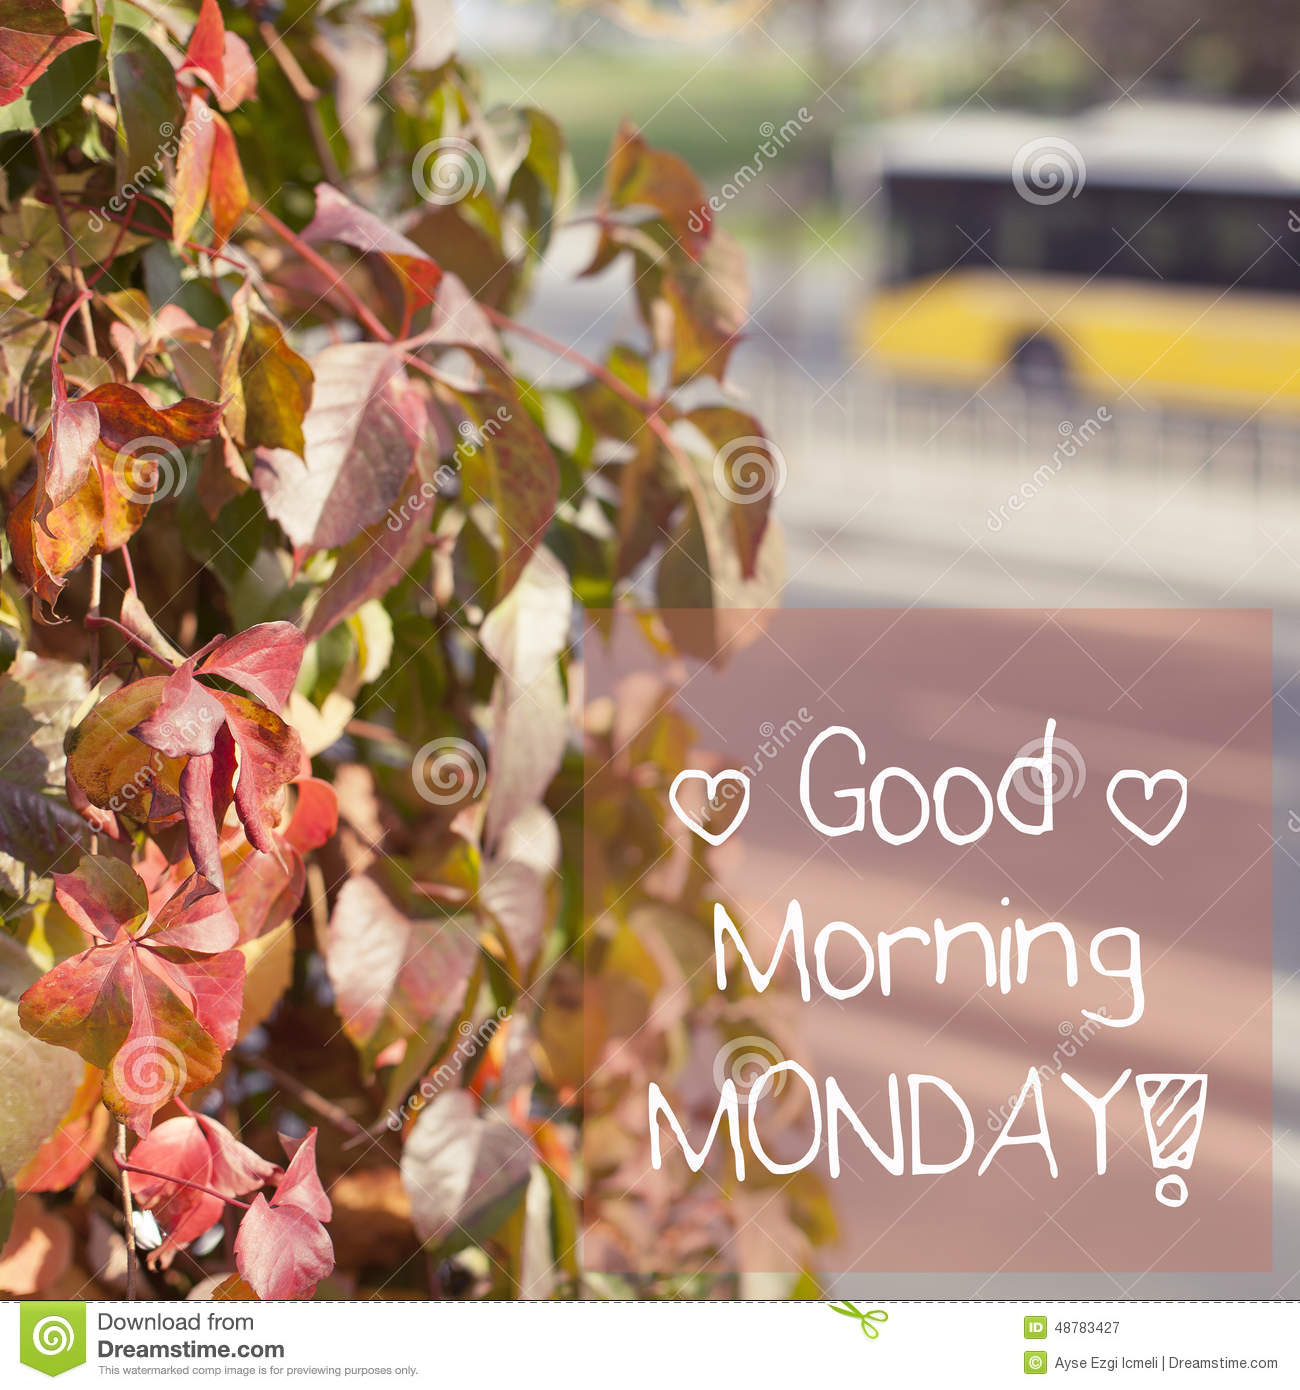 Good Morning Monday Inspirational Background Design Stock